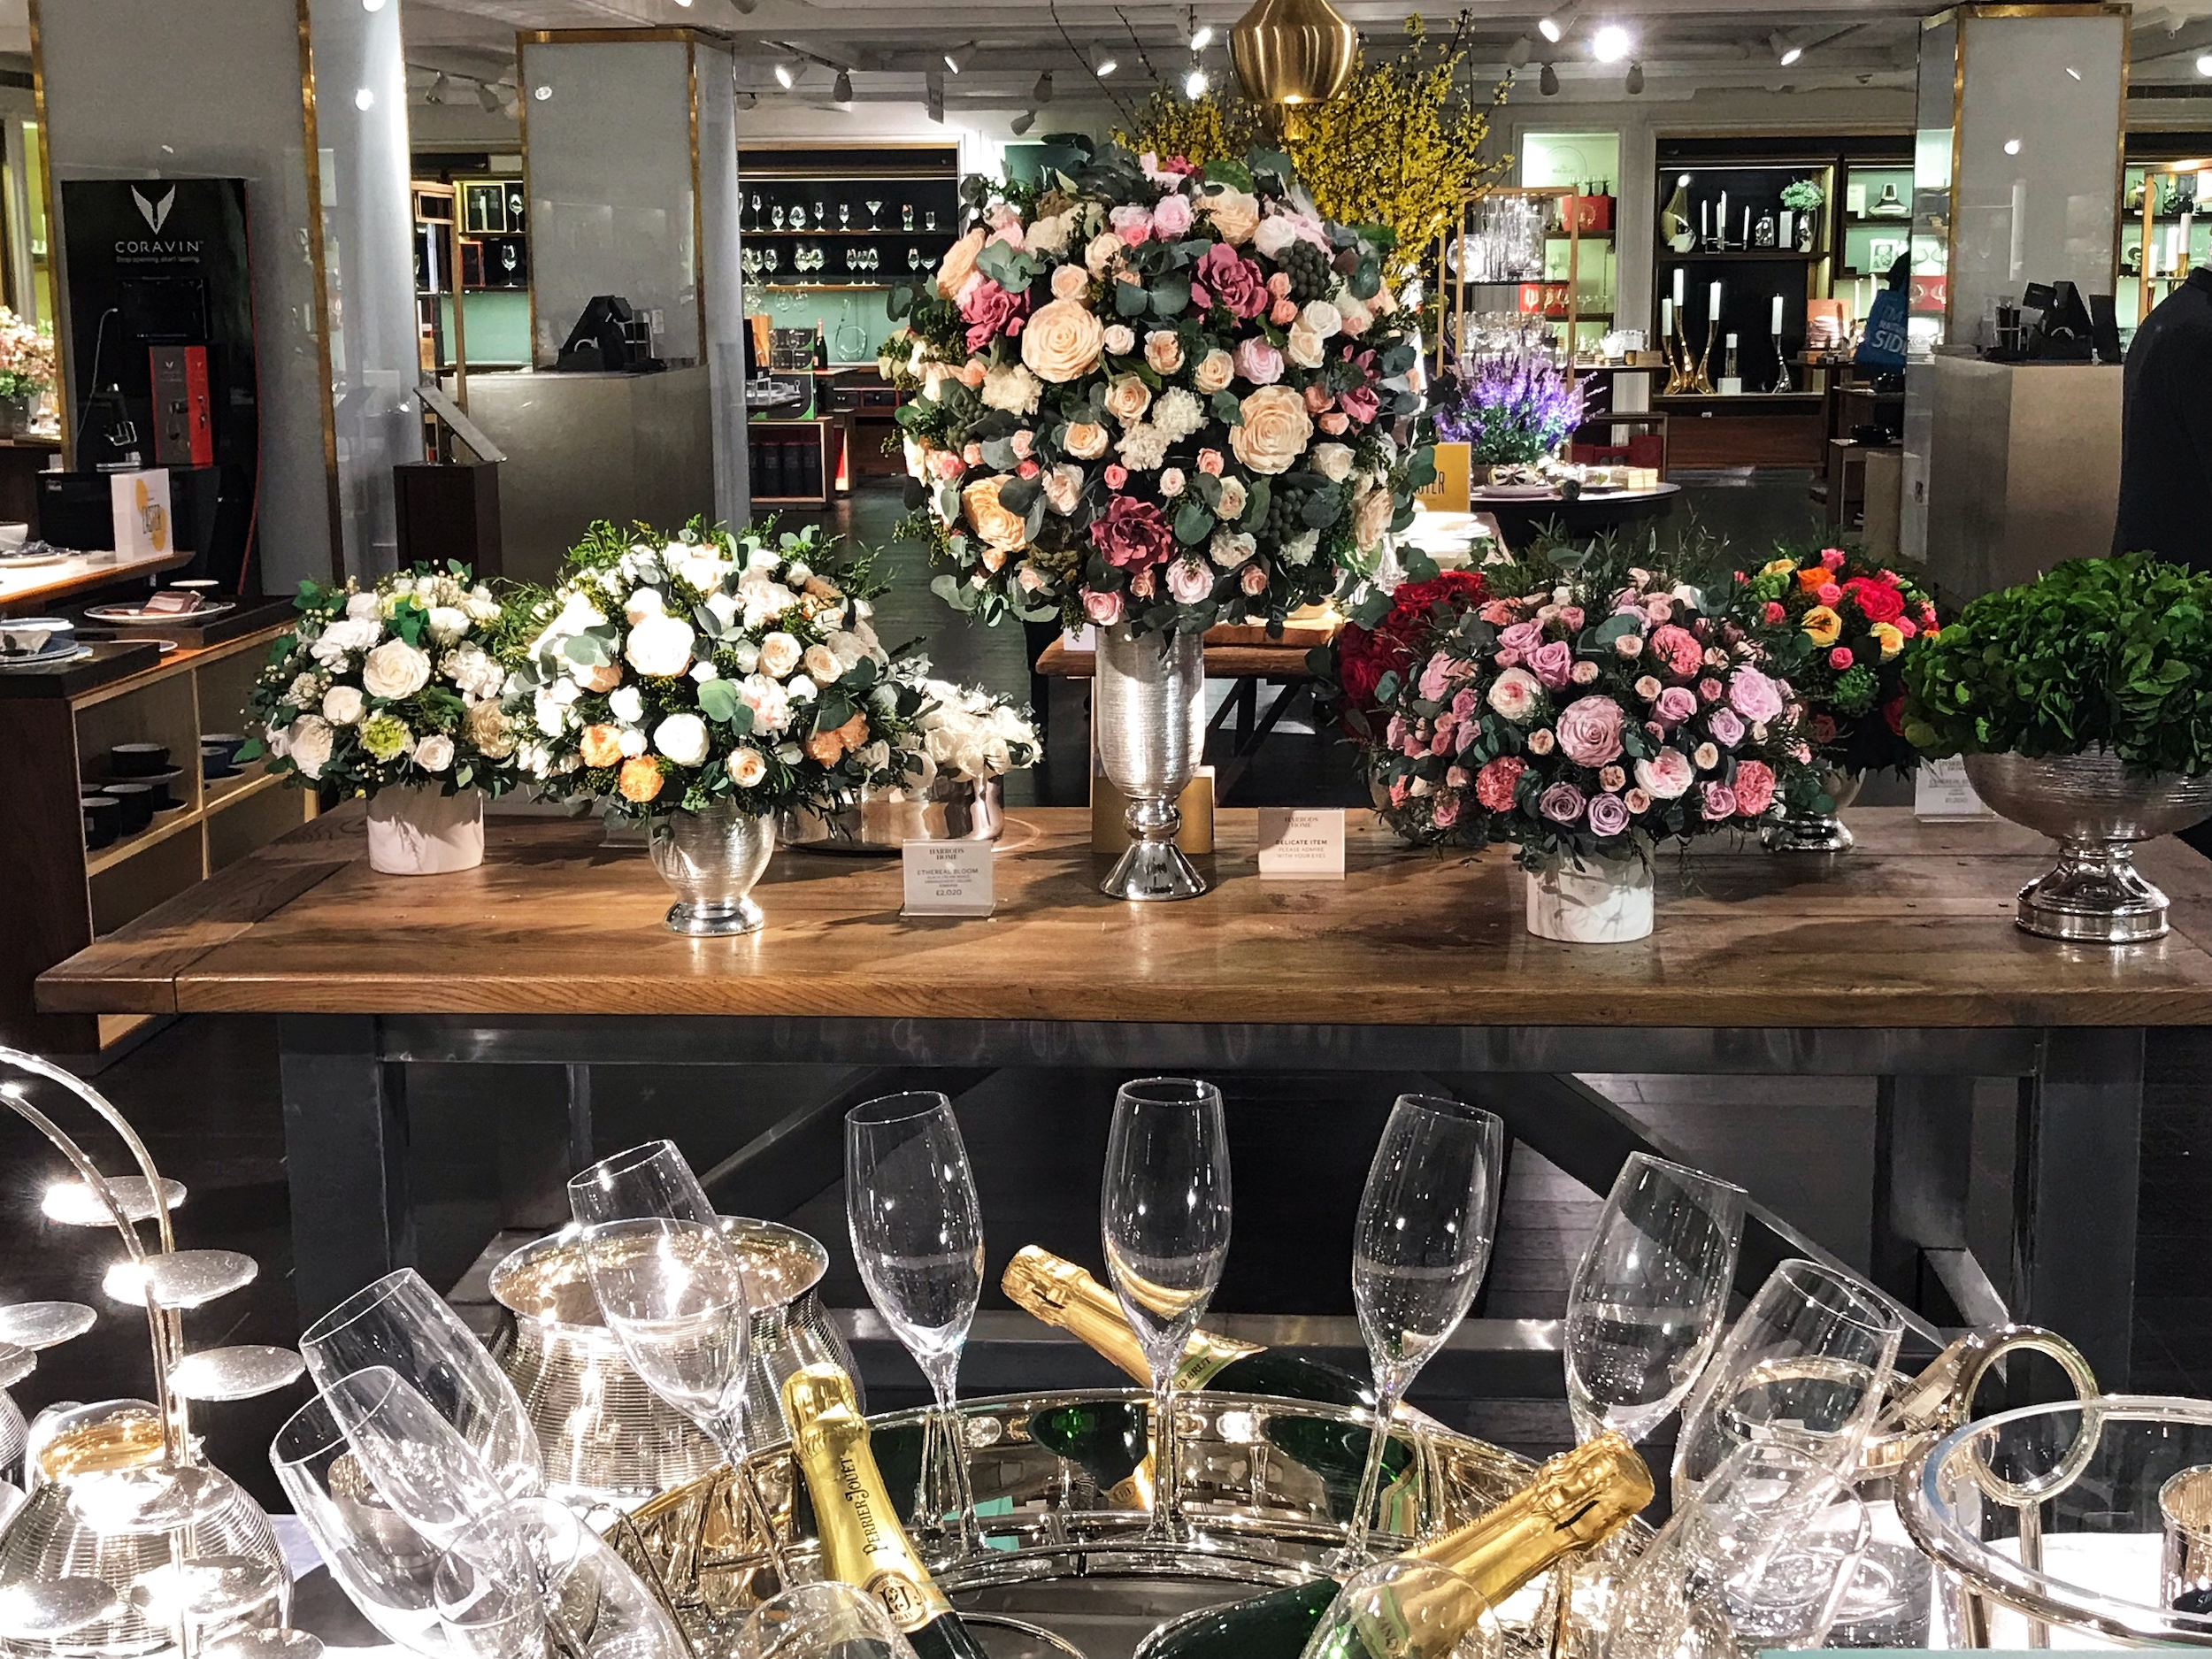 Flowers and Champagne Glasses In Harrods.jpg